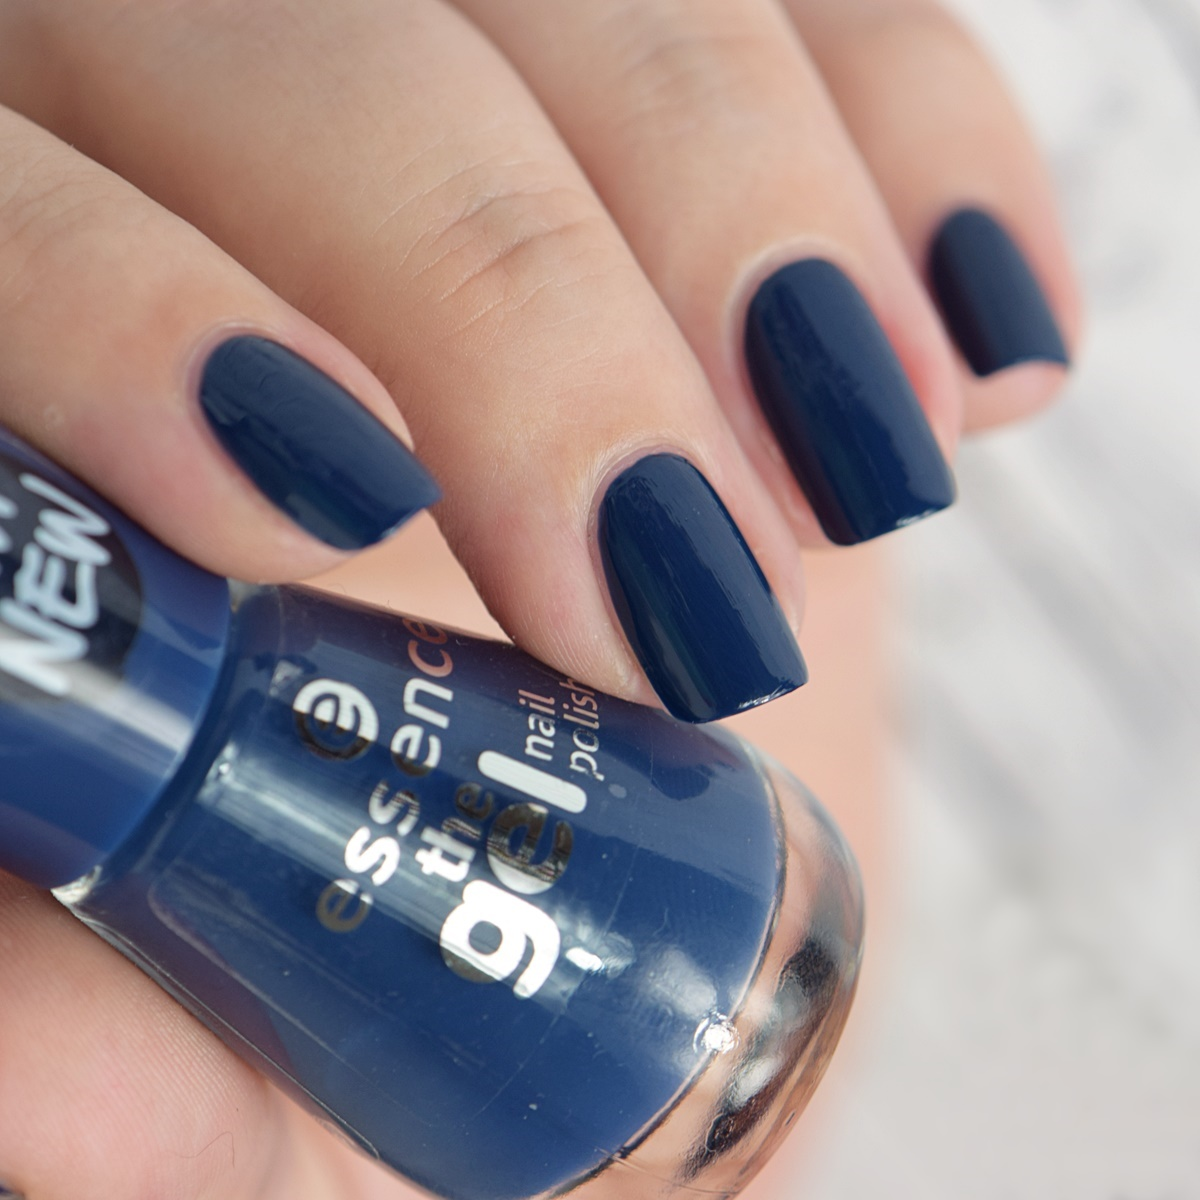 essence the gel nail polish 78 royal blue Swatches